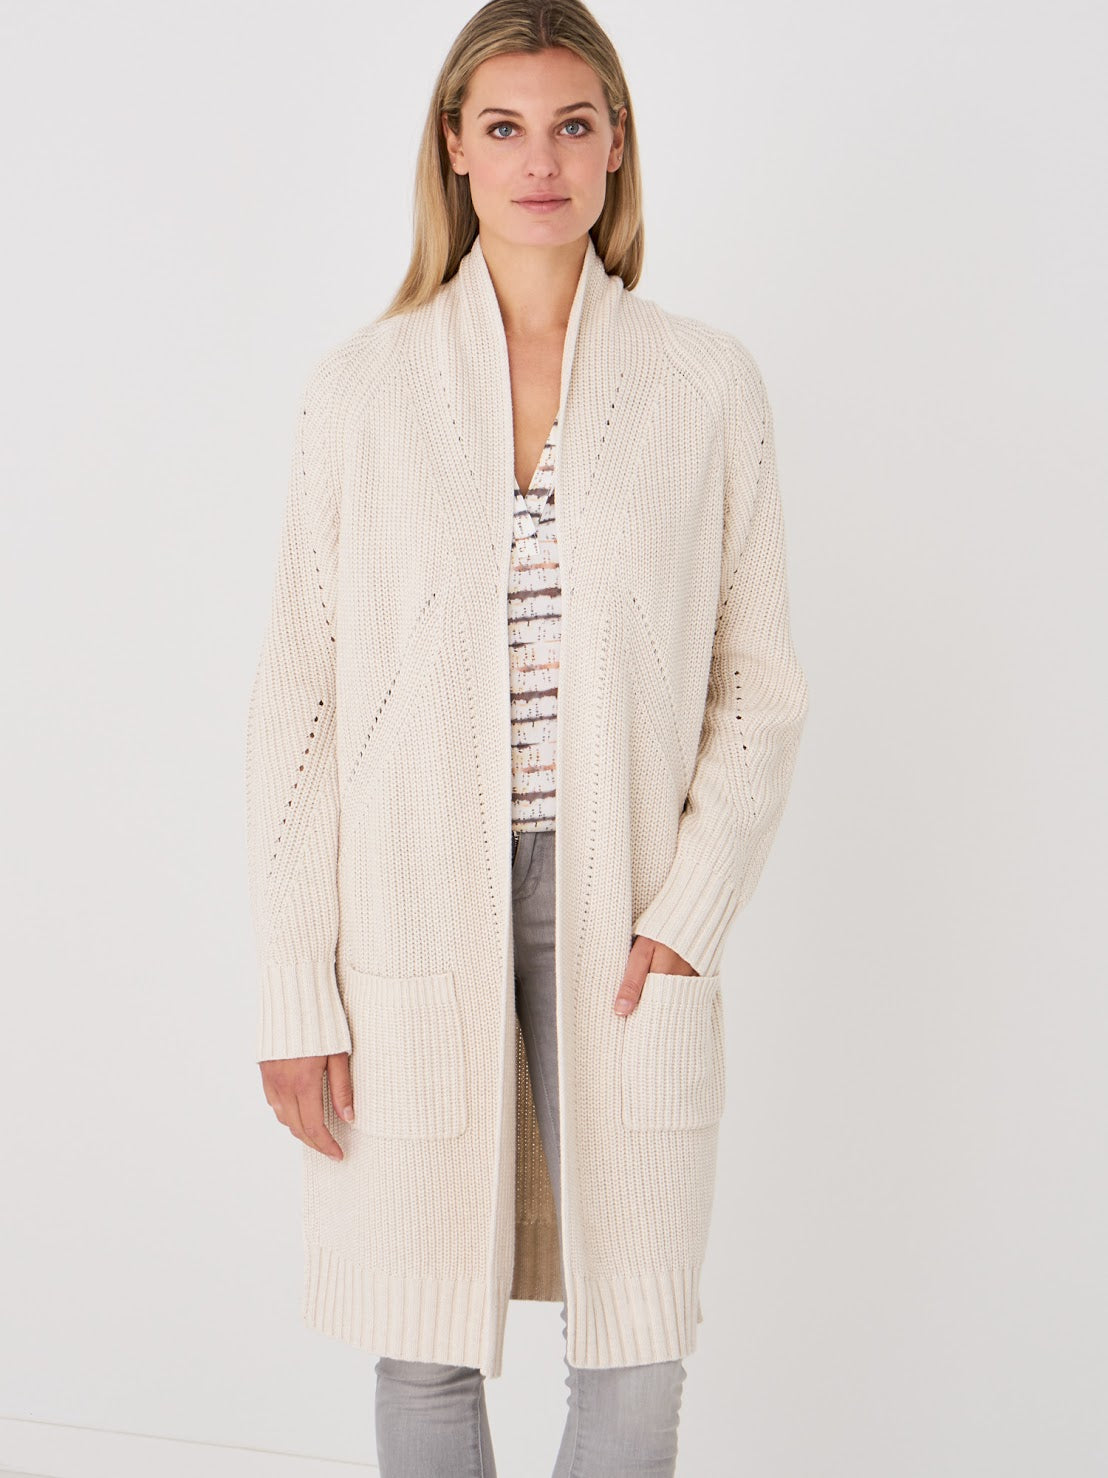 REPEAT COTTON BLEND CARDIGAN